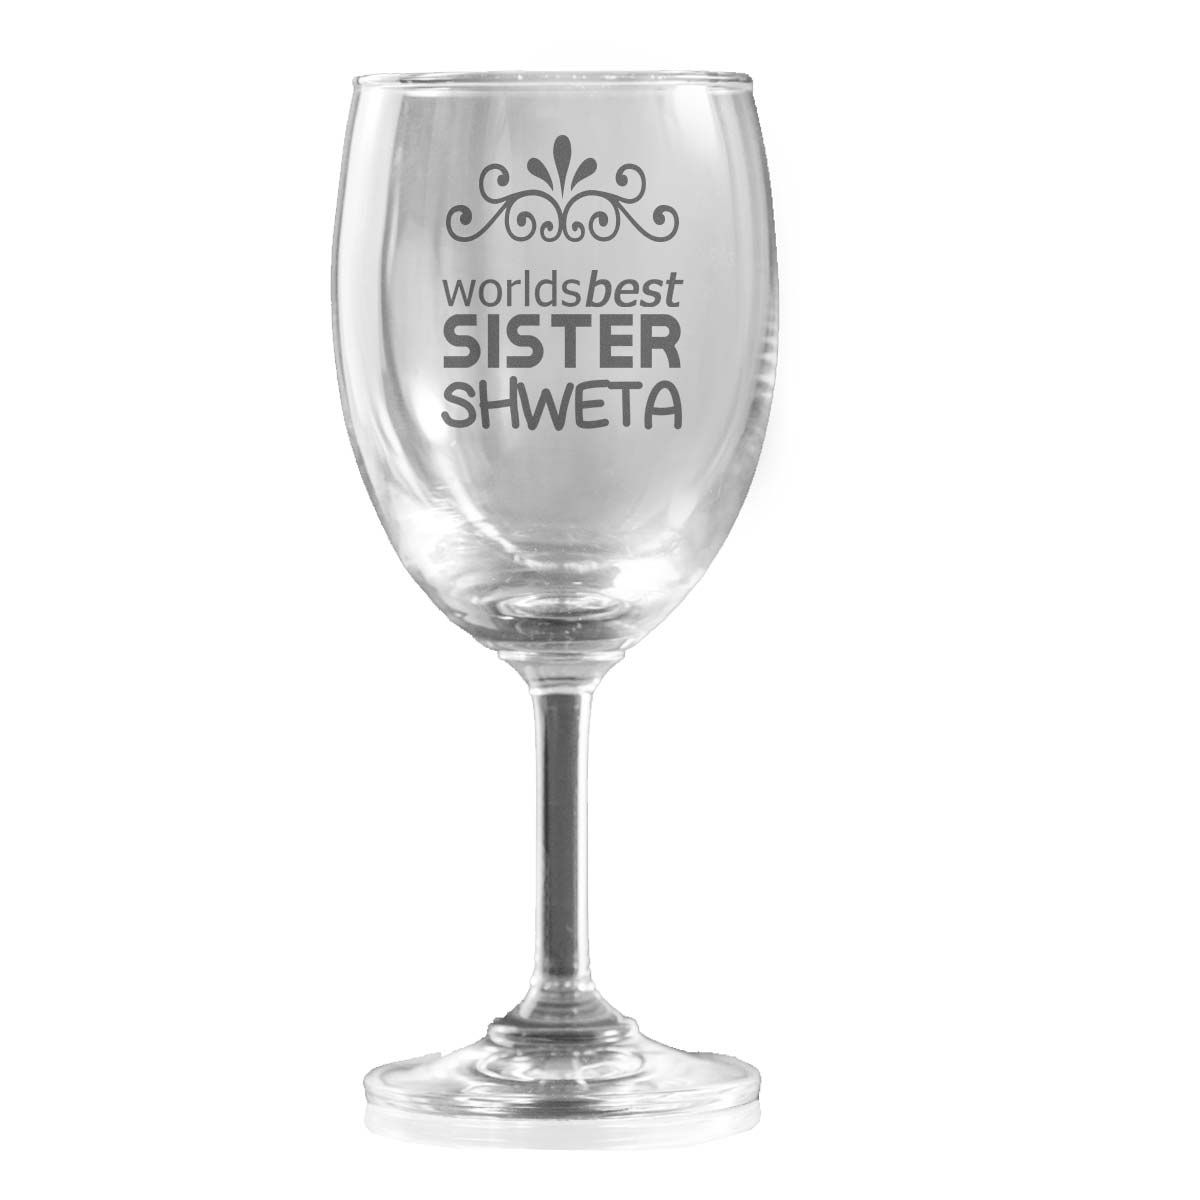 Be Creative With A Glass Engraving